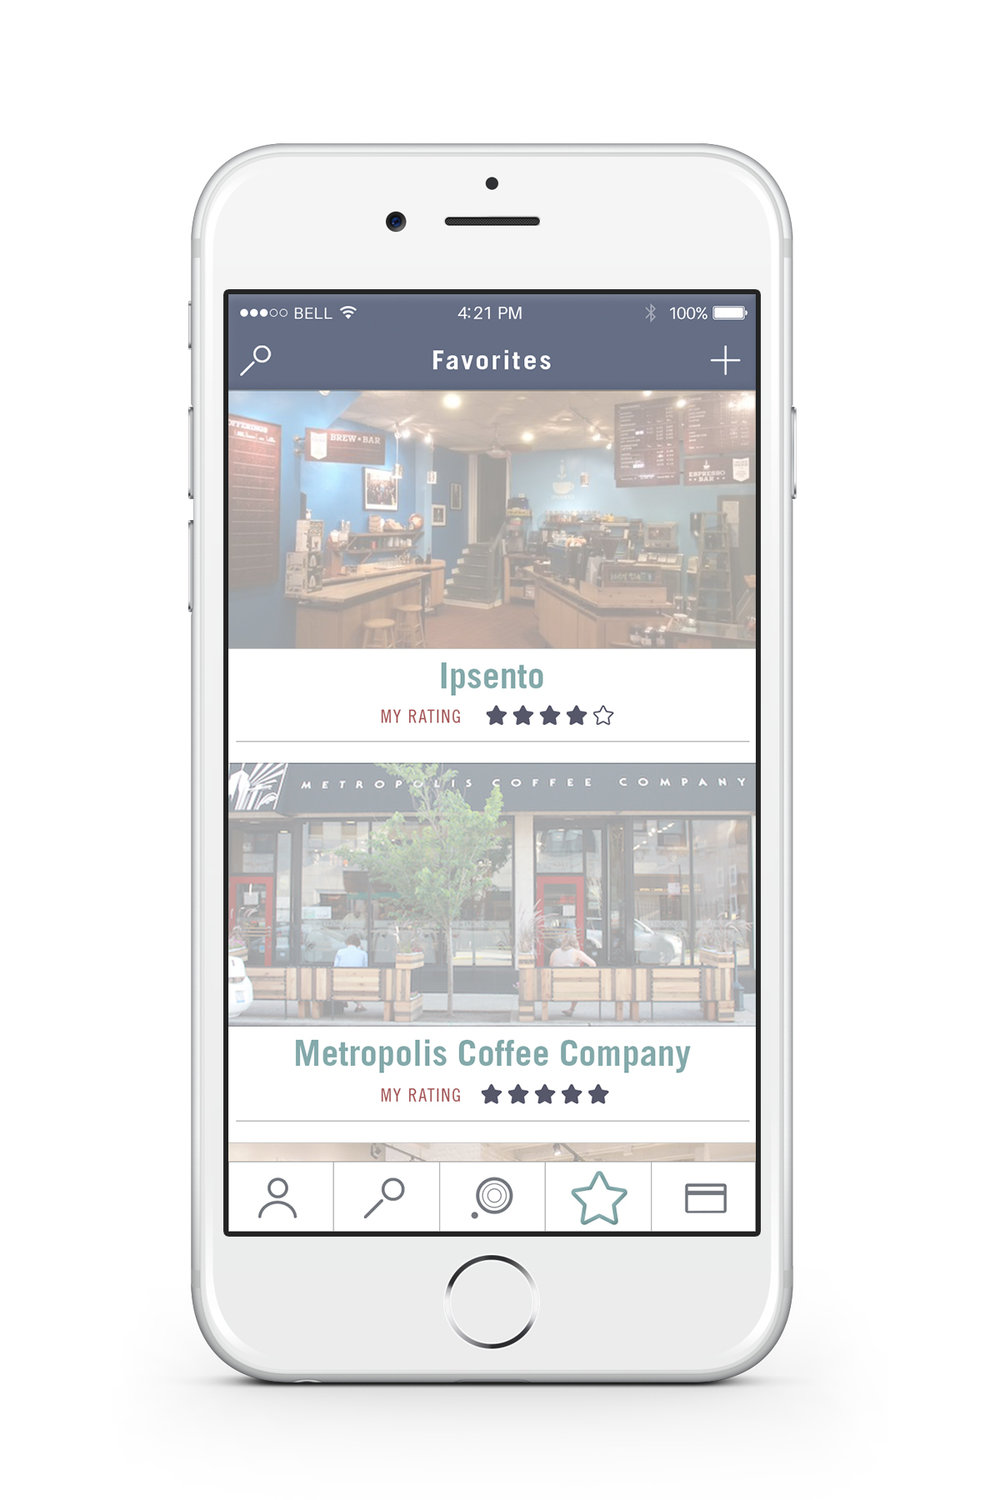 Favorites — When the user saves a location as a favorite spot, he/she can quickly access the location through the favorites tab.